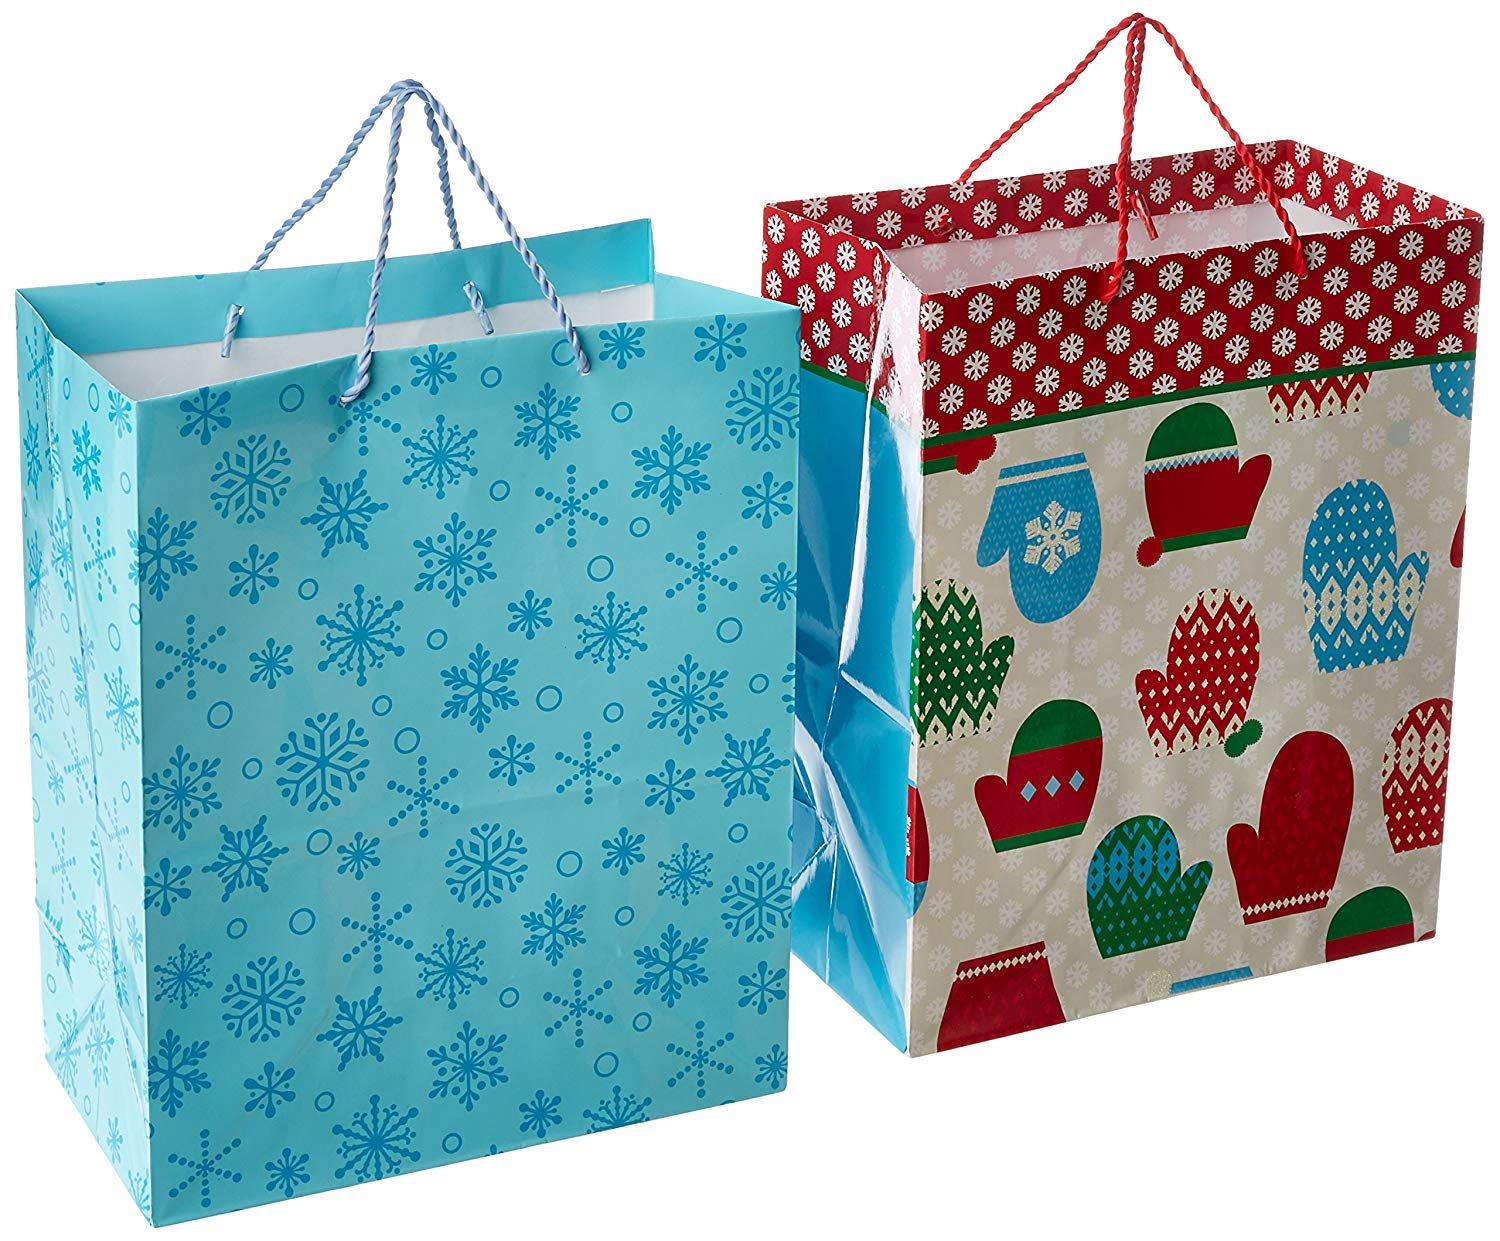 Hallmark Large Holiday Gift Bags, Mitten and Snowflakes (Pack of 2)